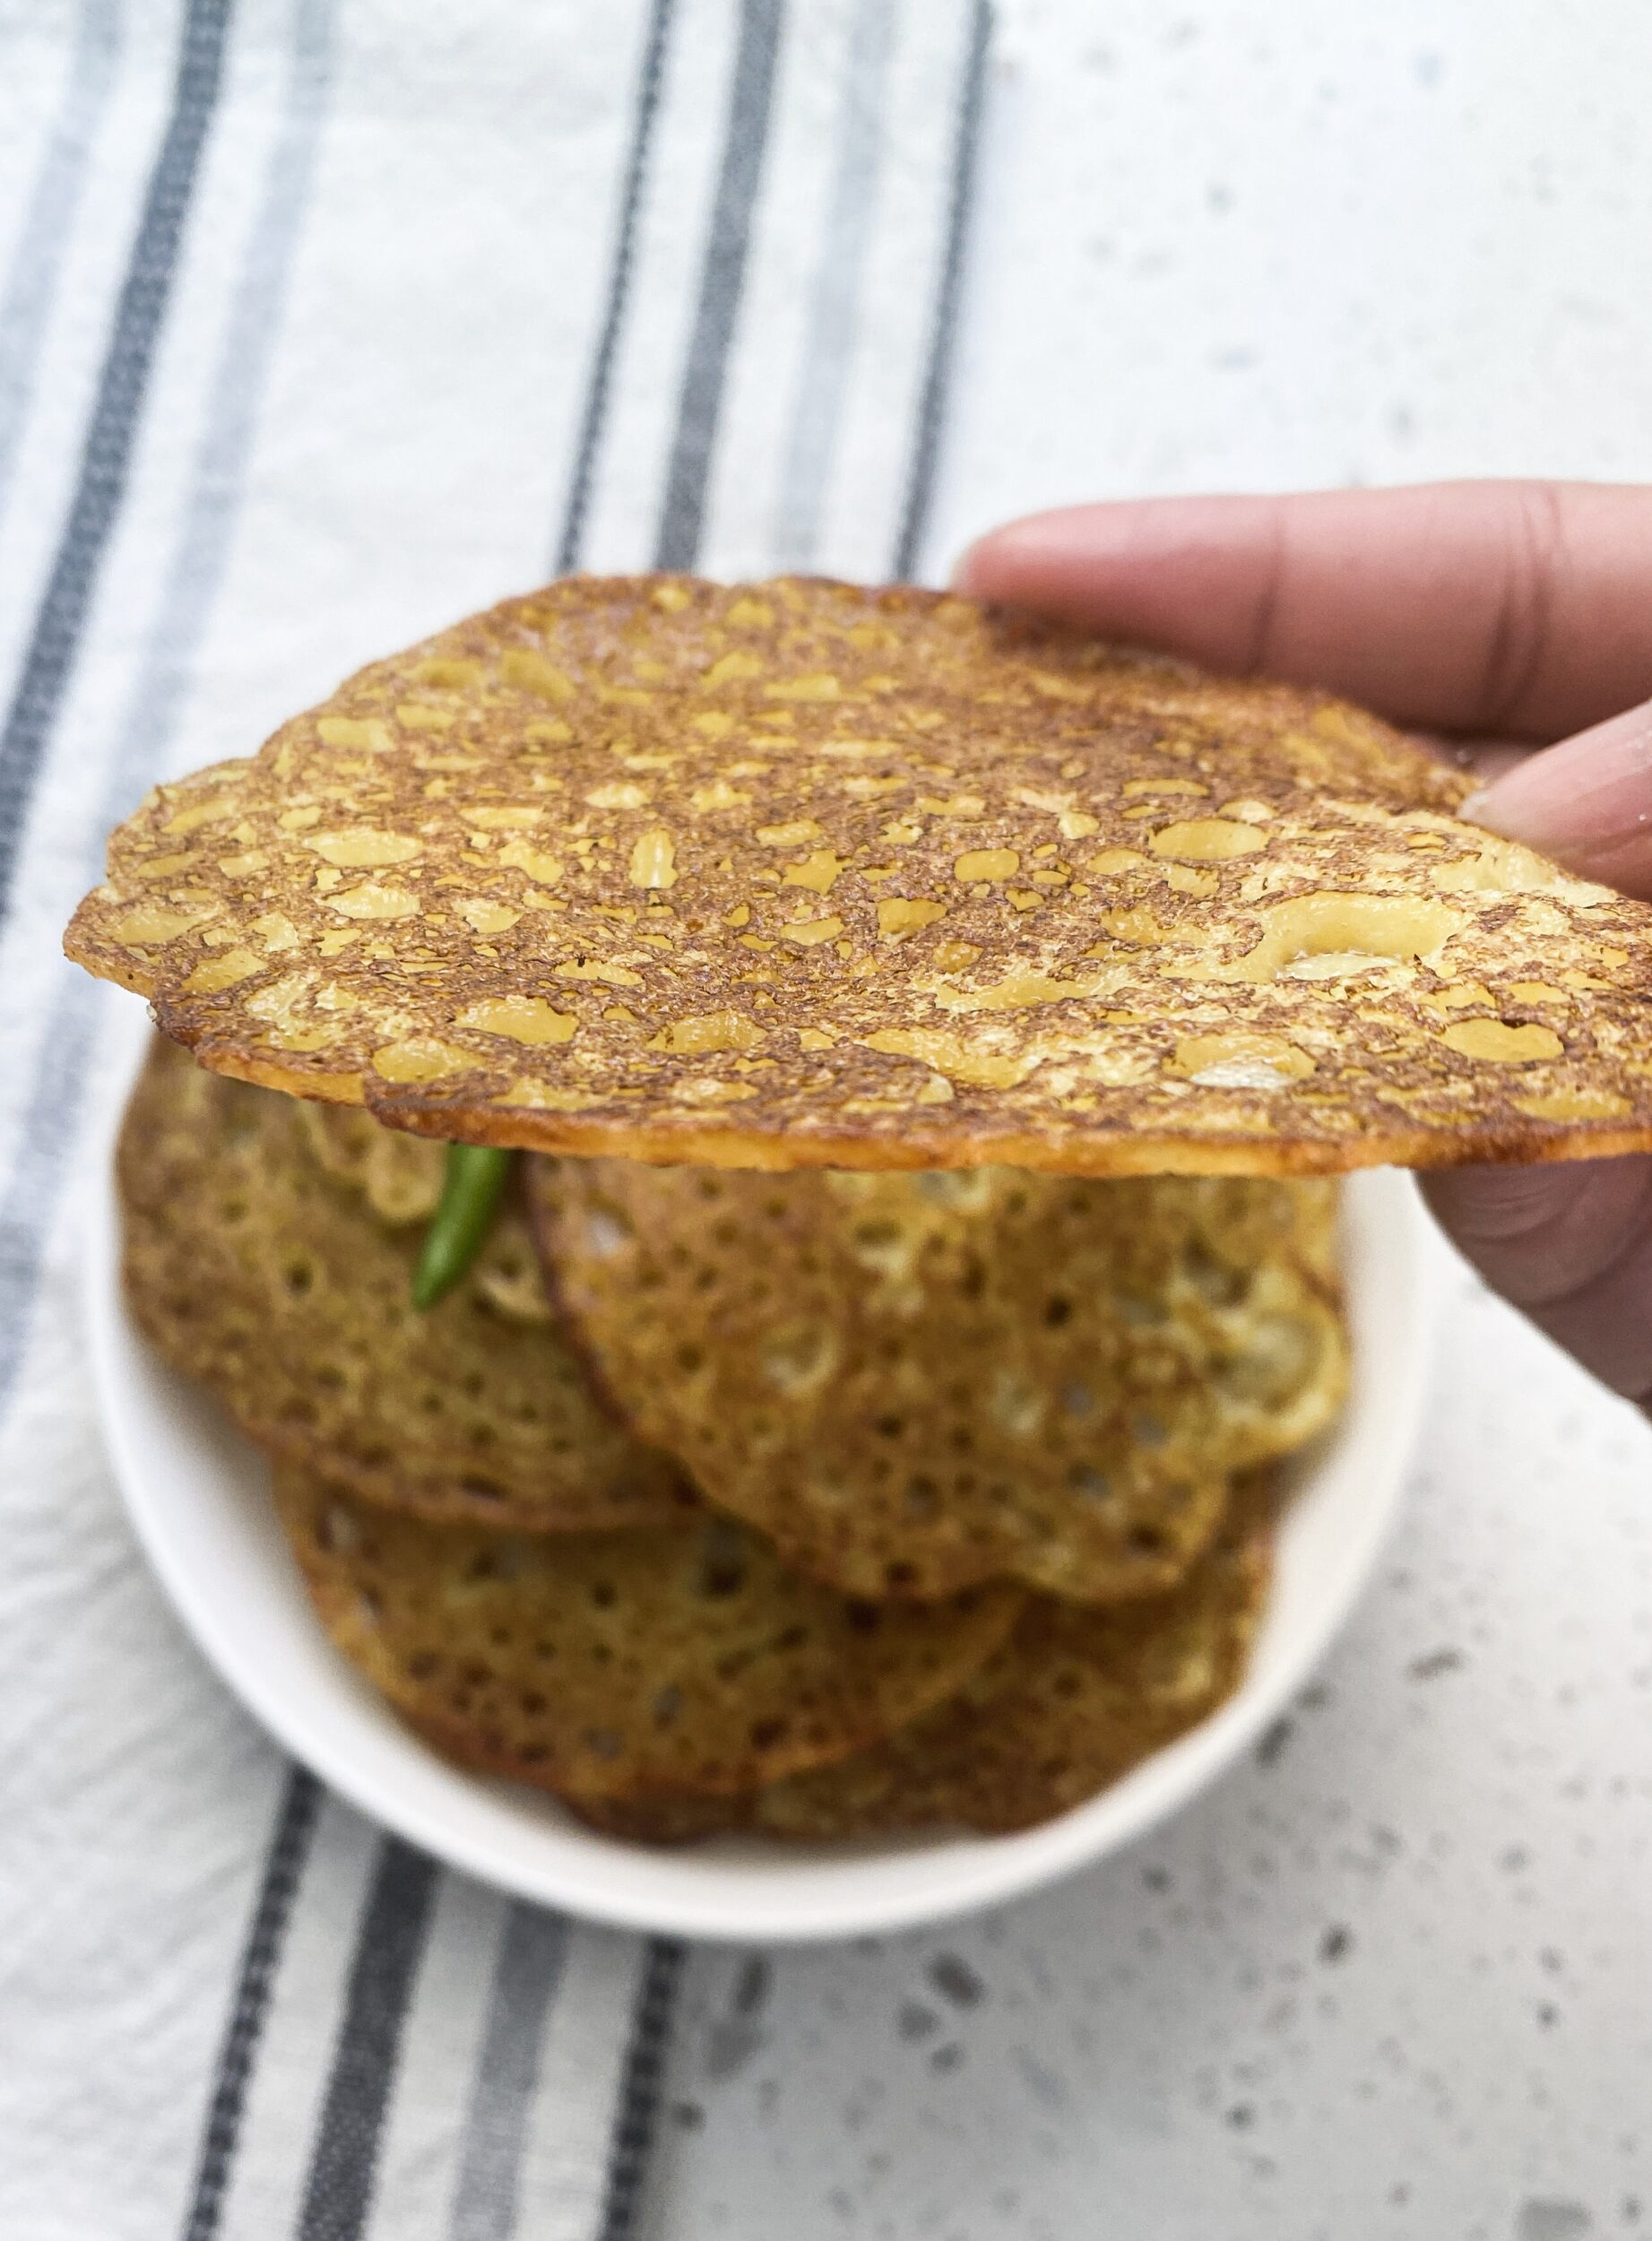 holding a flat khatta poodla with a hand showing thin and crisp end result